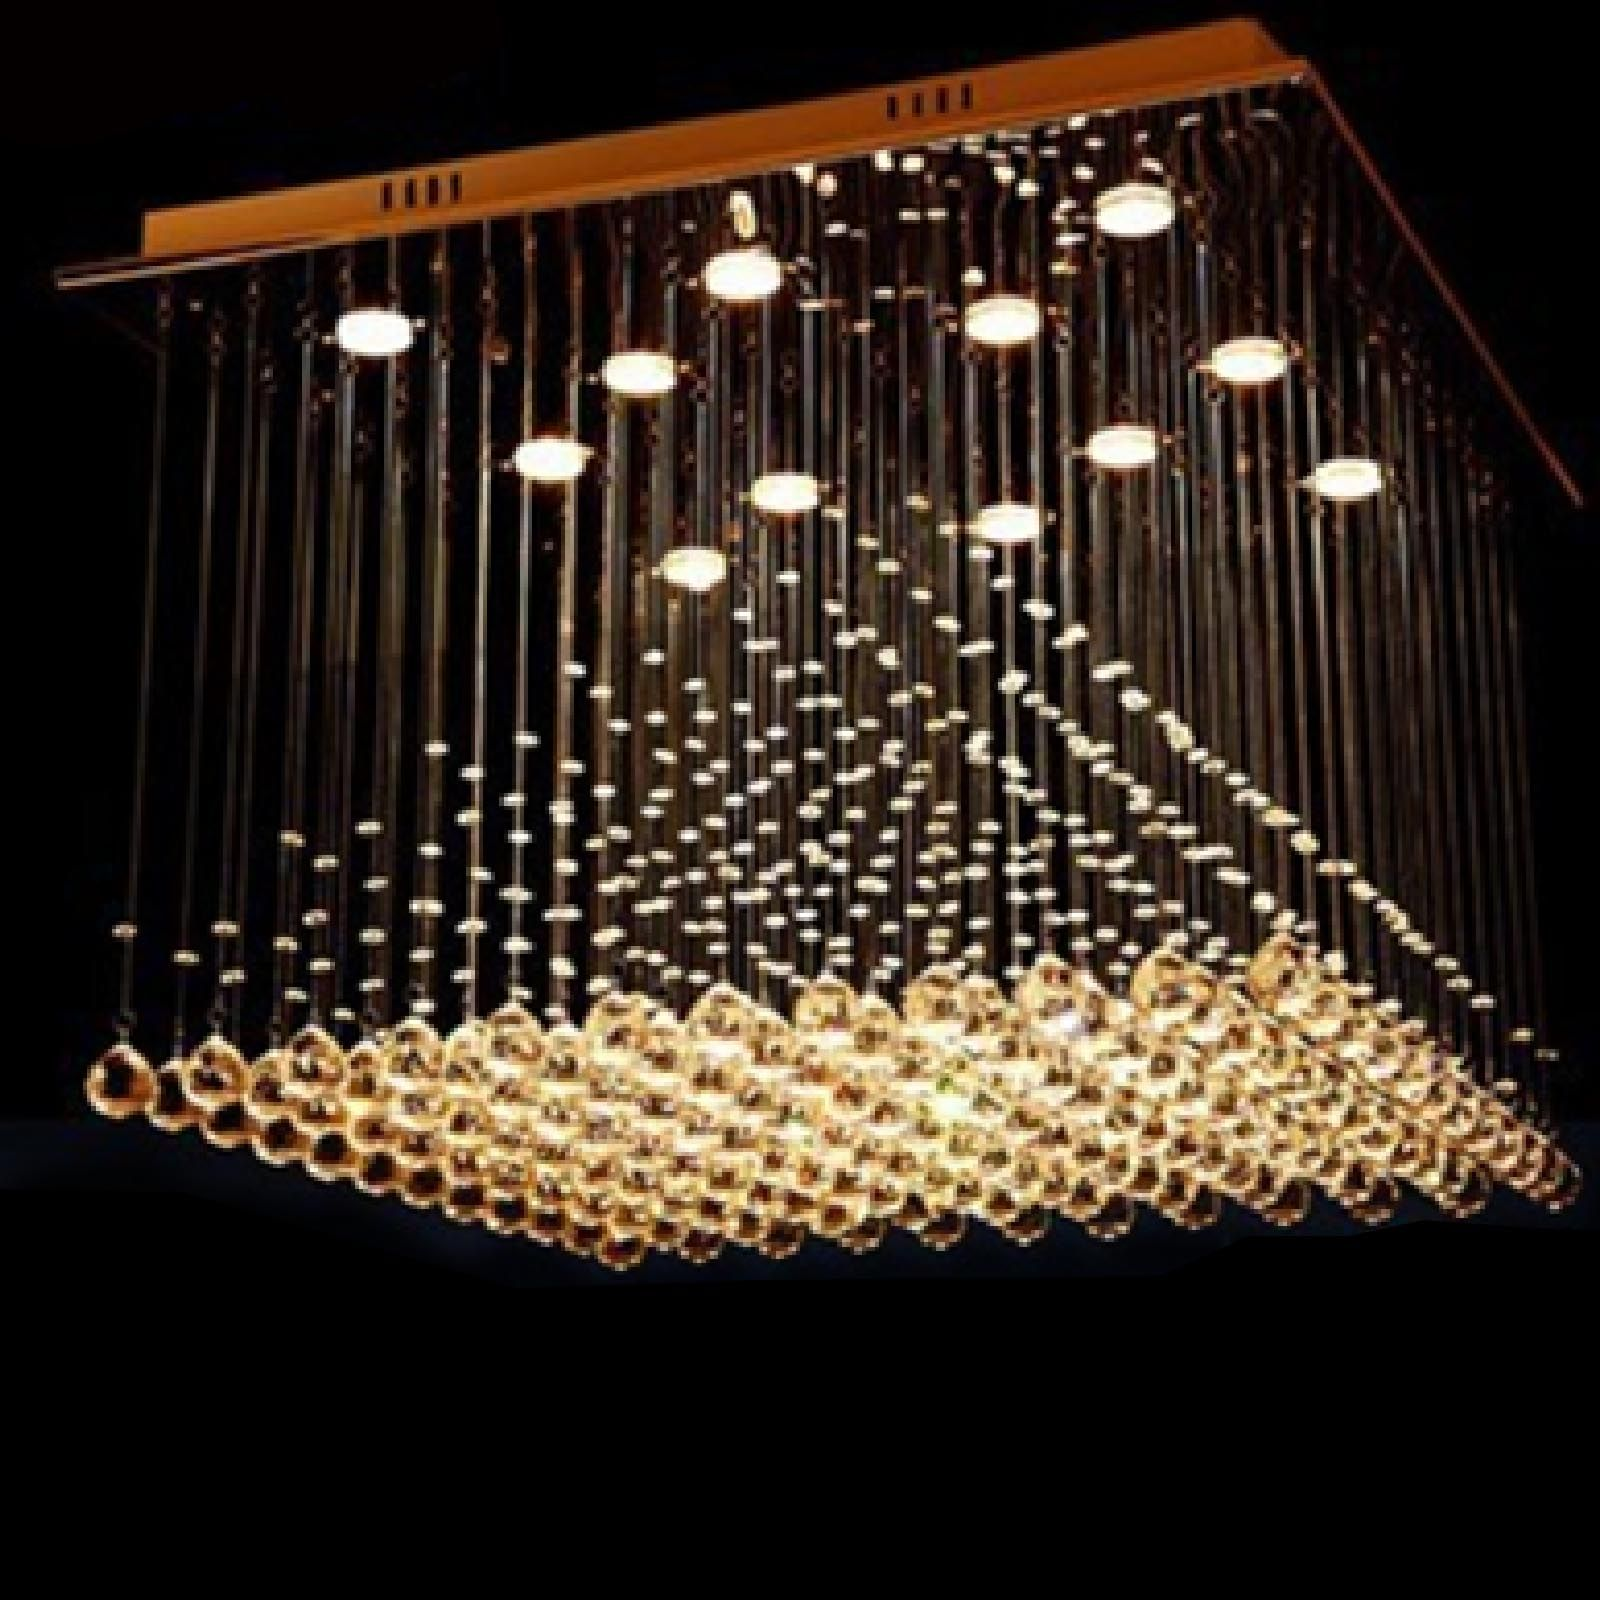 Byb Modern Chandelier Rain Drop Pyramid Chandeliers Lighting H80 W80